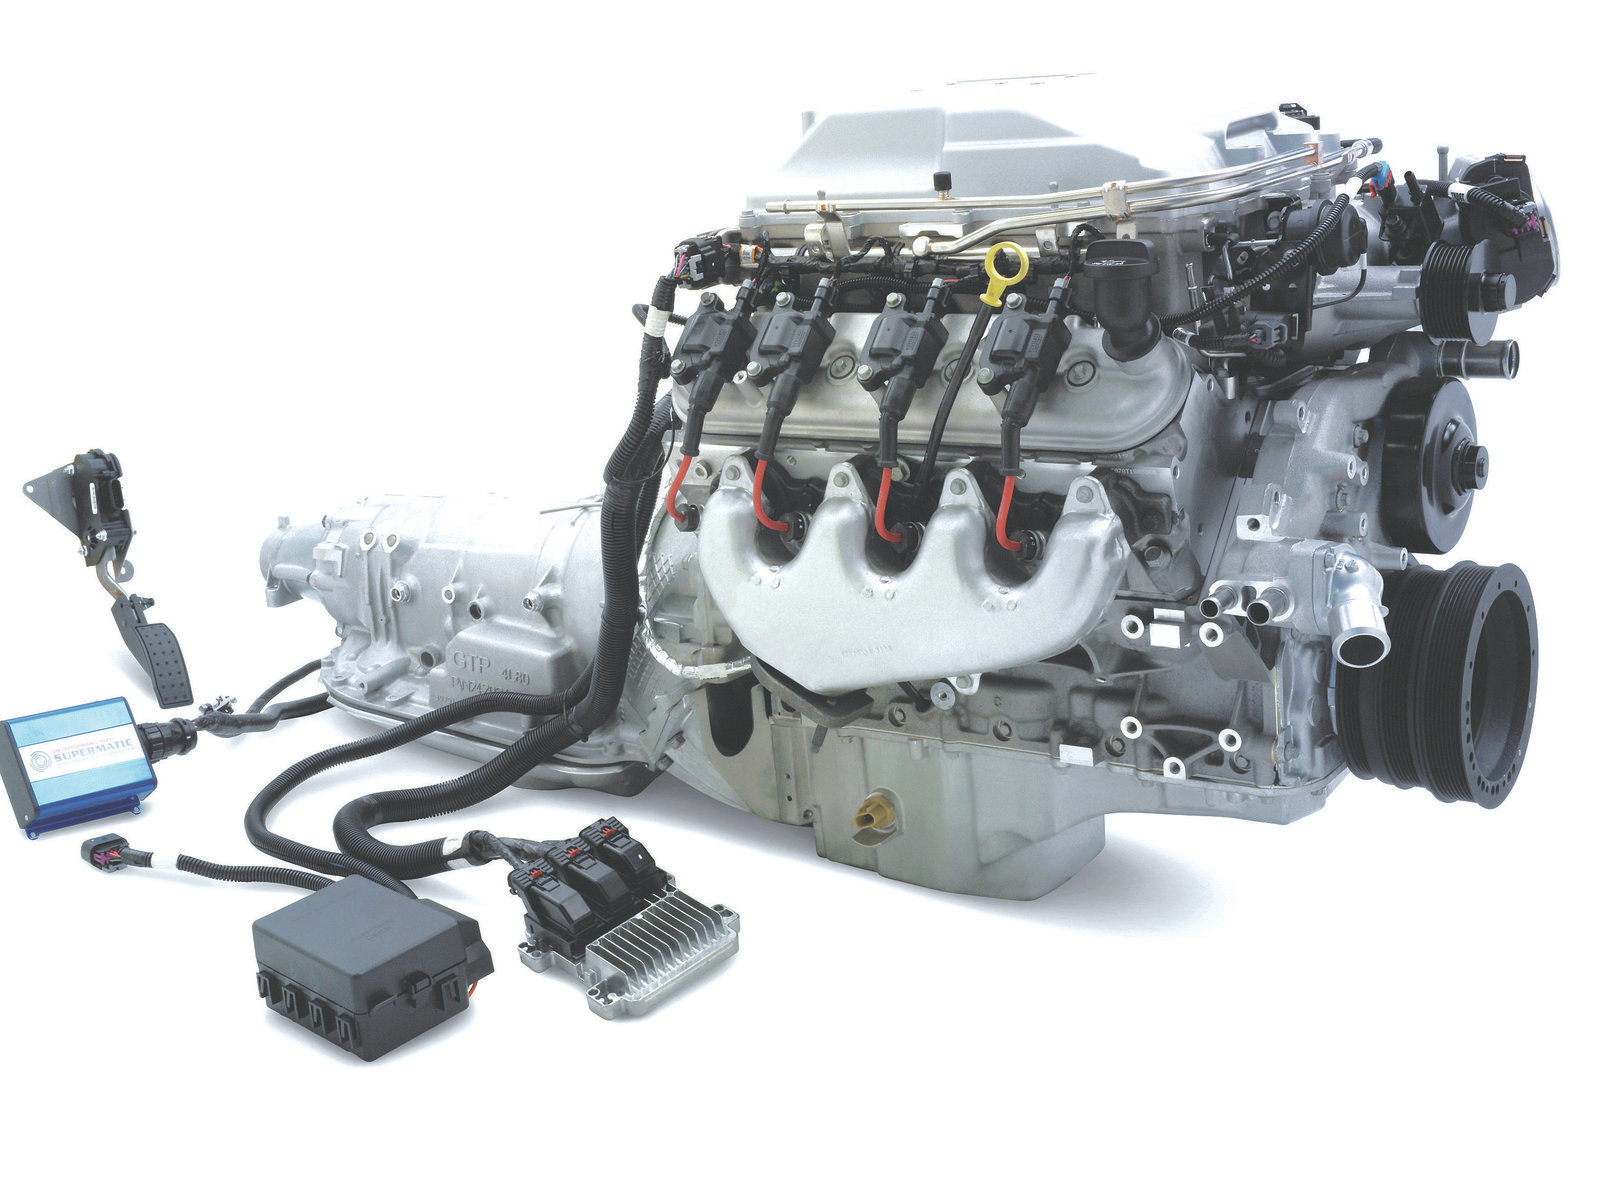 How To Identify All Those Different Late Model Gm V8 Engines Hot A Diagram Of An Evolution If New Crate Engine Better Fits Your Plans Chevrolet Performance Has Slew Options Including The 53 And 60l Erod As Well